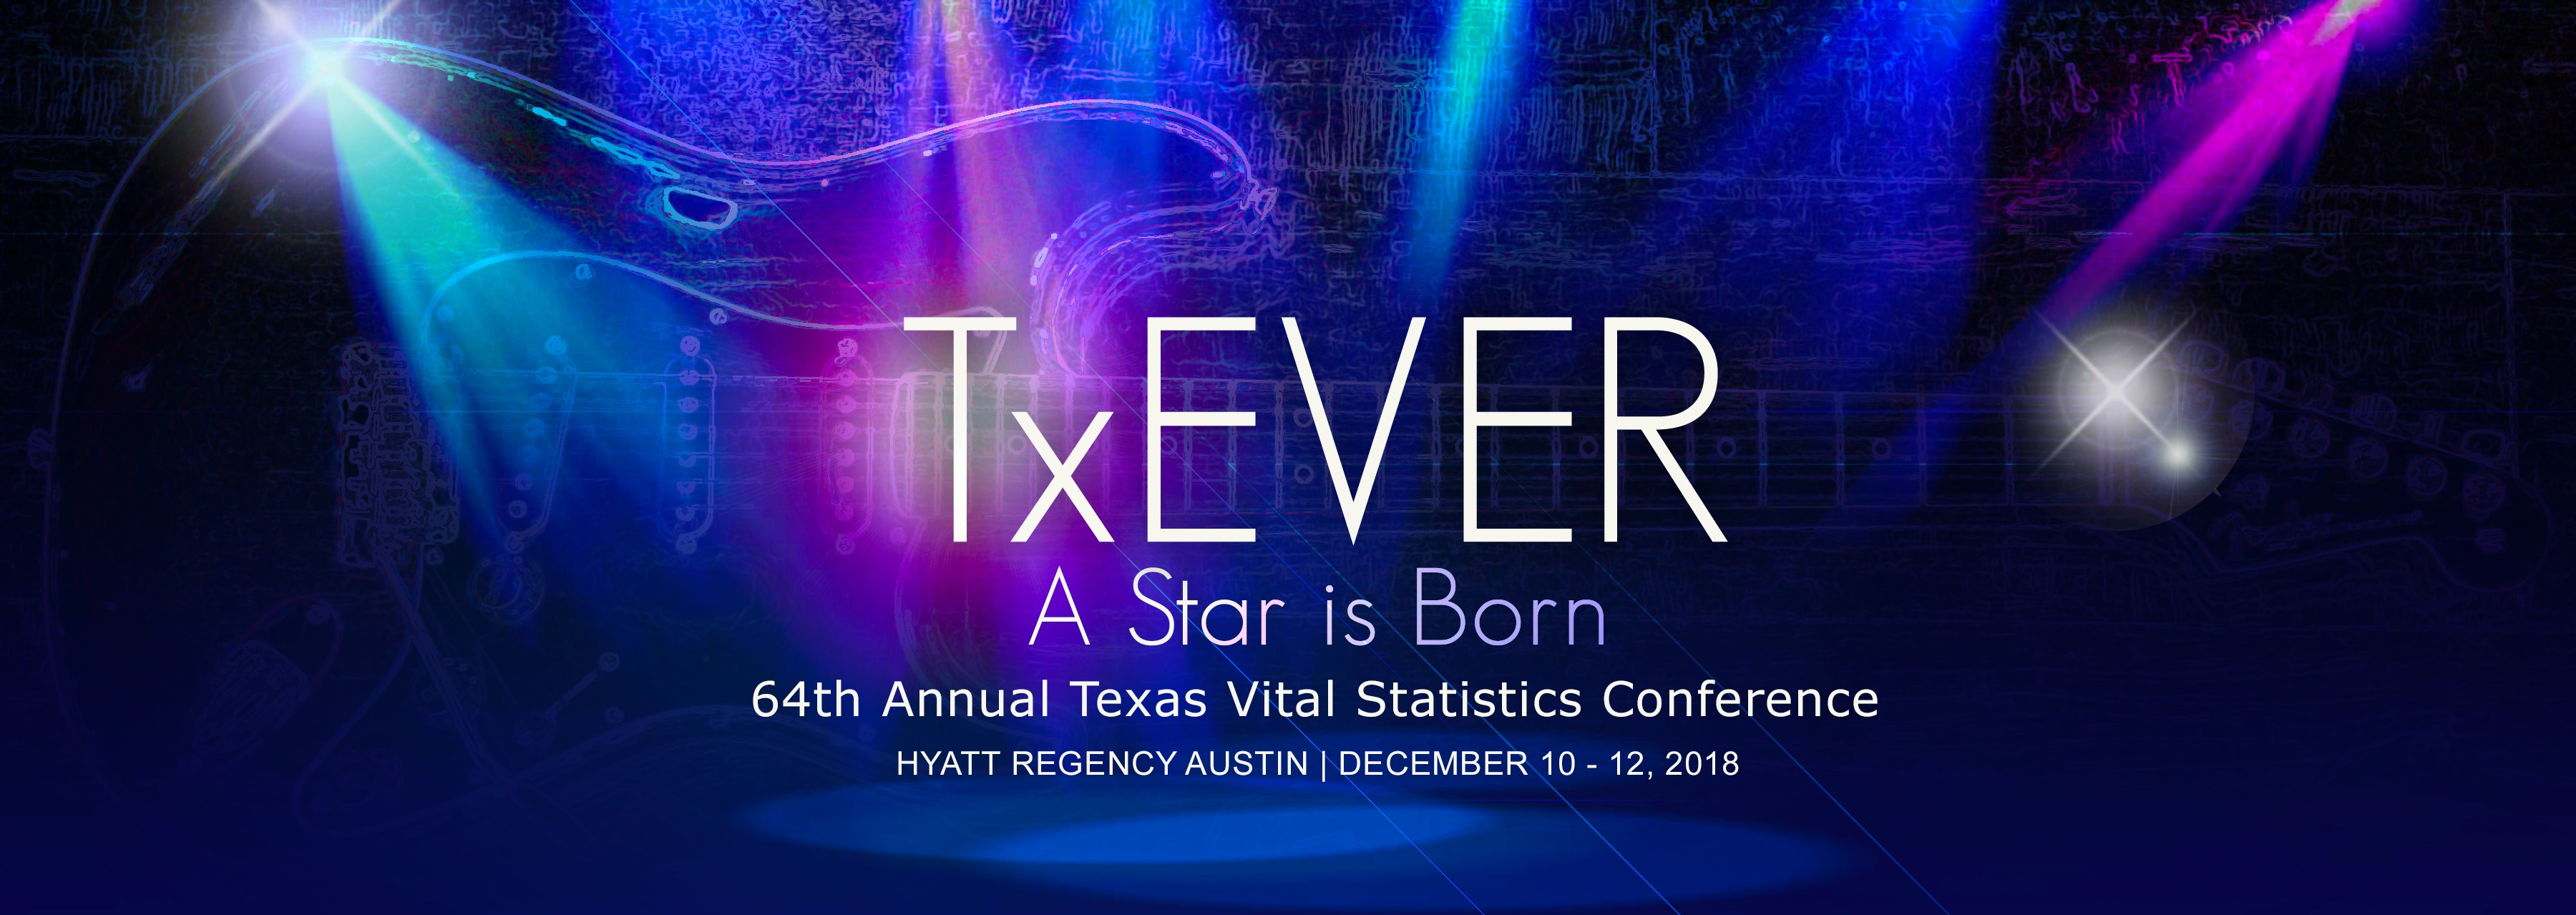 64th Annual Texas Vital Statistics Conference